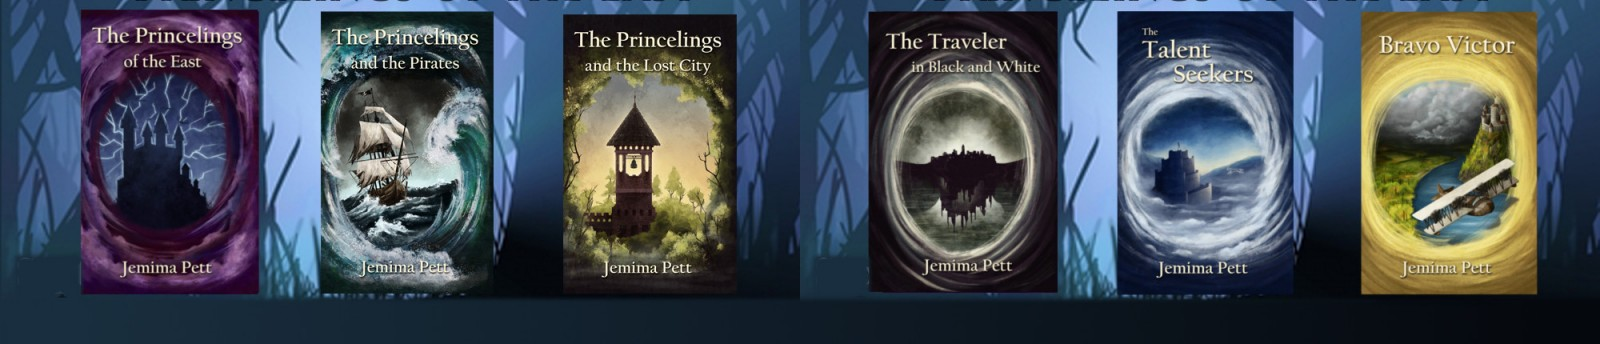 covers for the princelings series